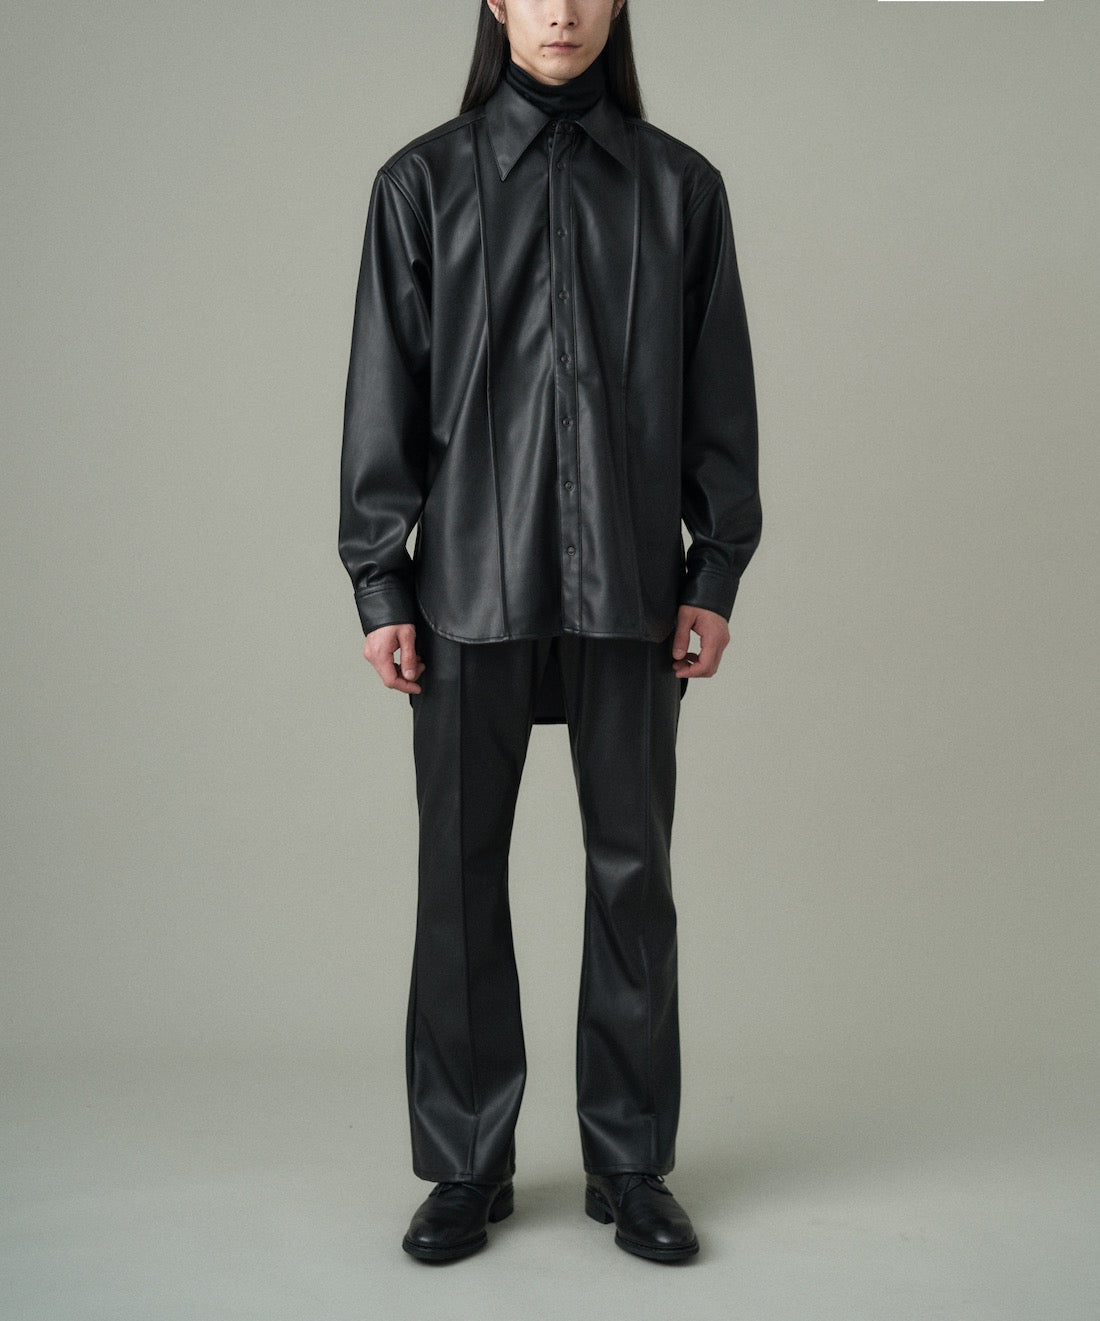 SYNTHETIC LEATHER PIN TUCK SHIRT